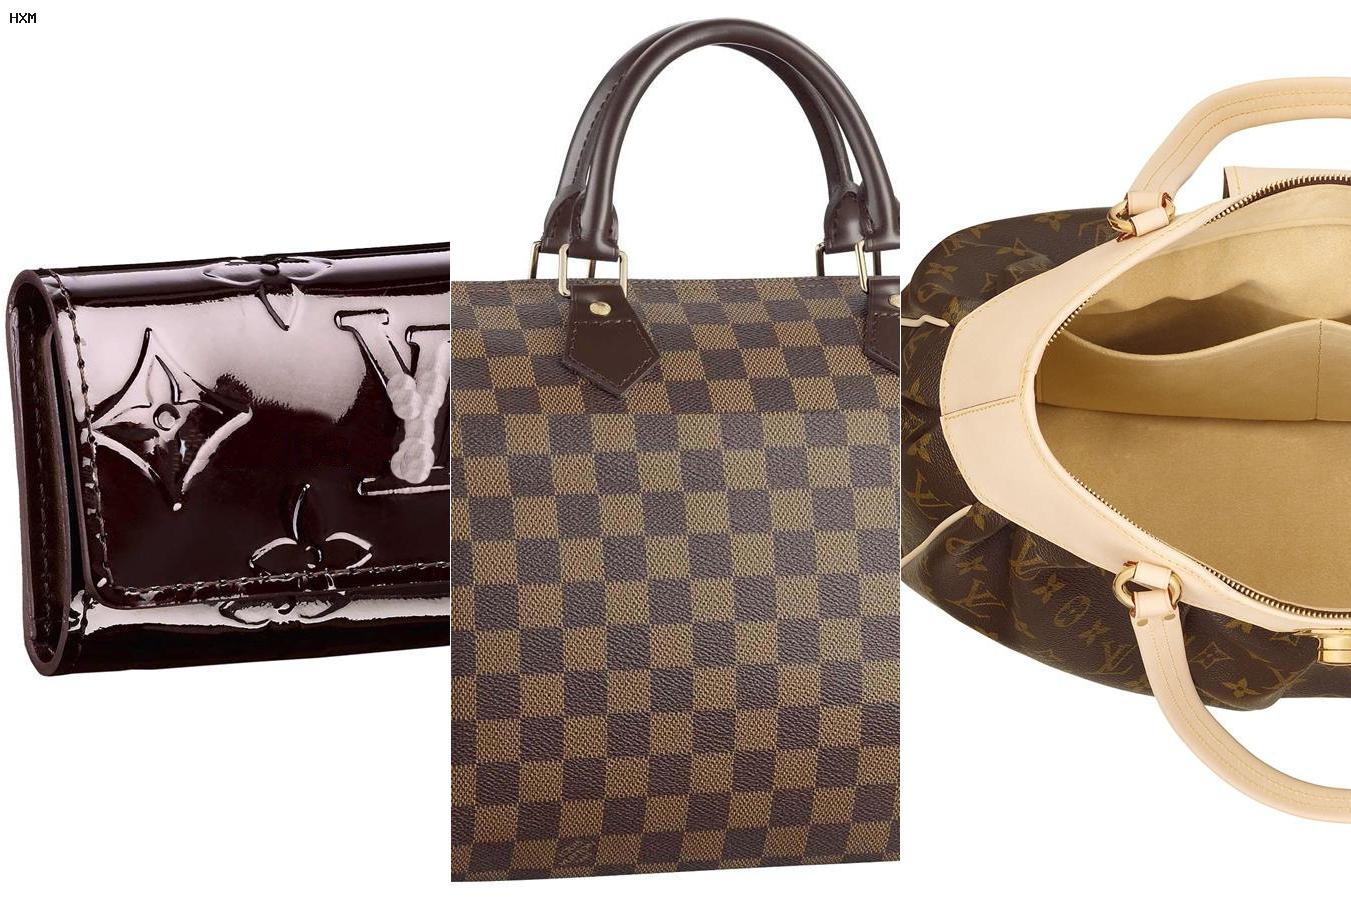 louis vuitton damier azur cabas adventure bag